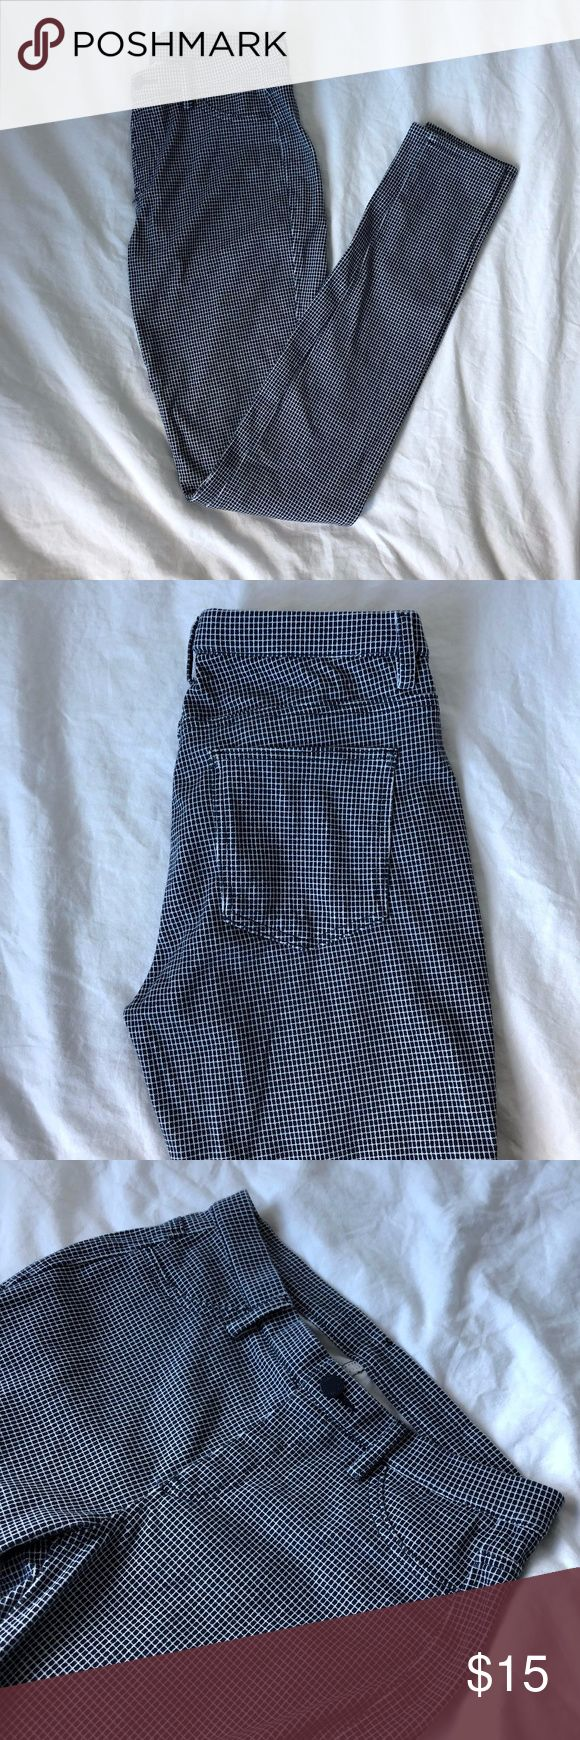 Uniqlo Legging Pants -NWOT -Navy and white checkered legging pants UNIQLO Pants Leggings